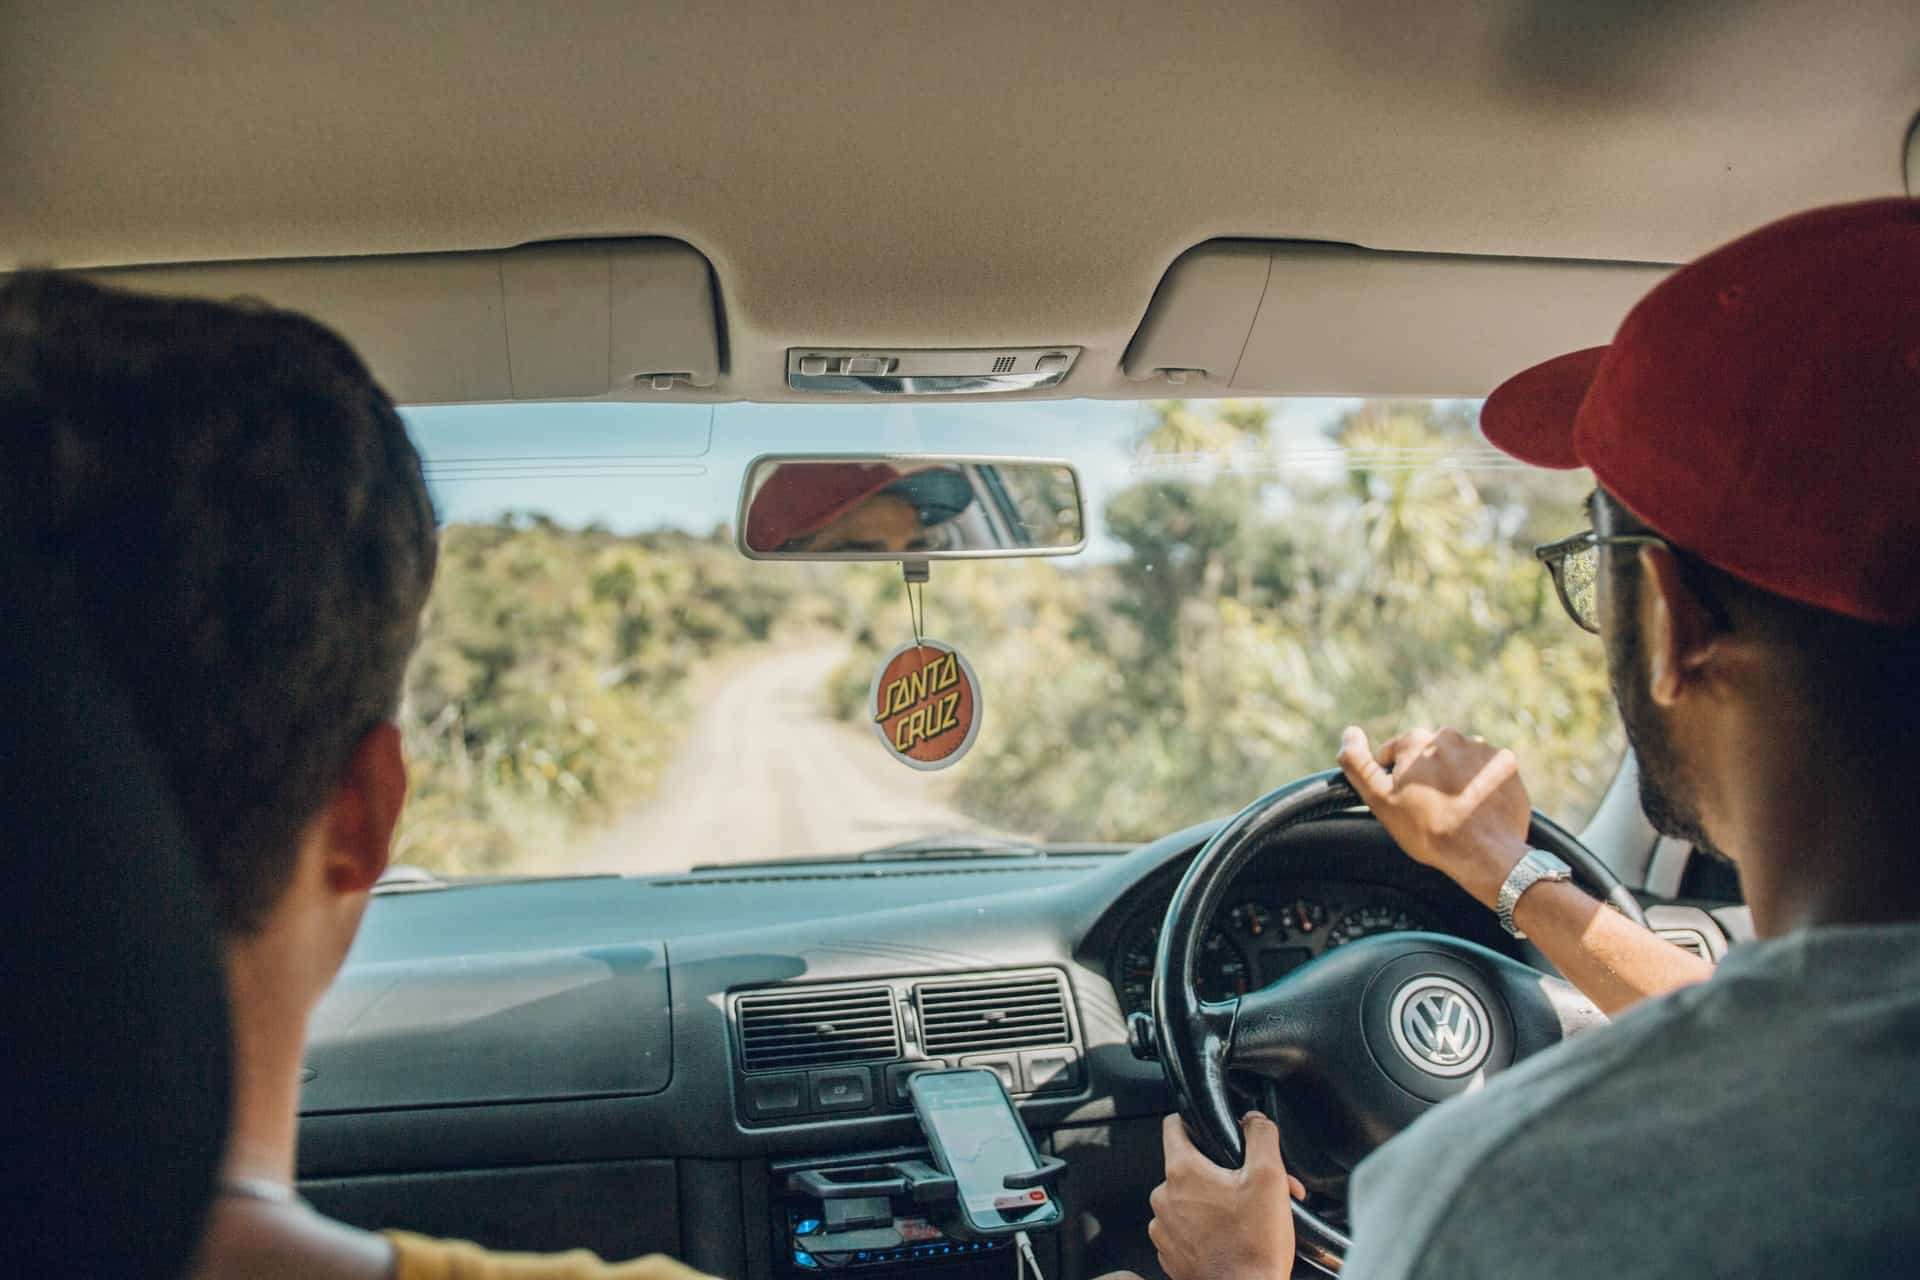 Approved Driving Instructor ADI Qualification Process